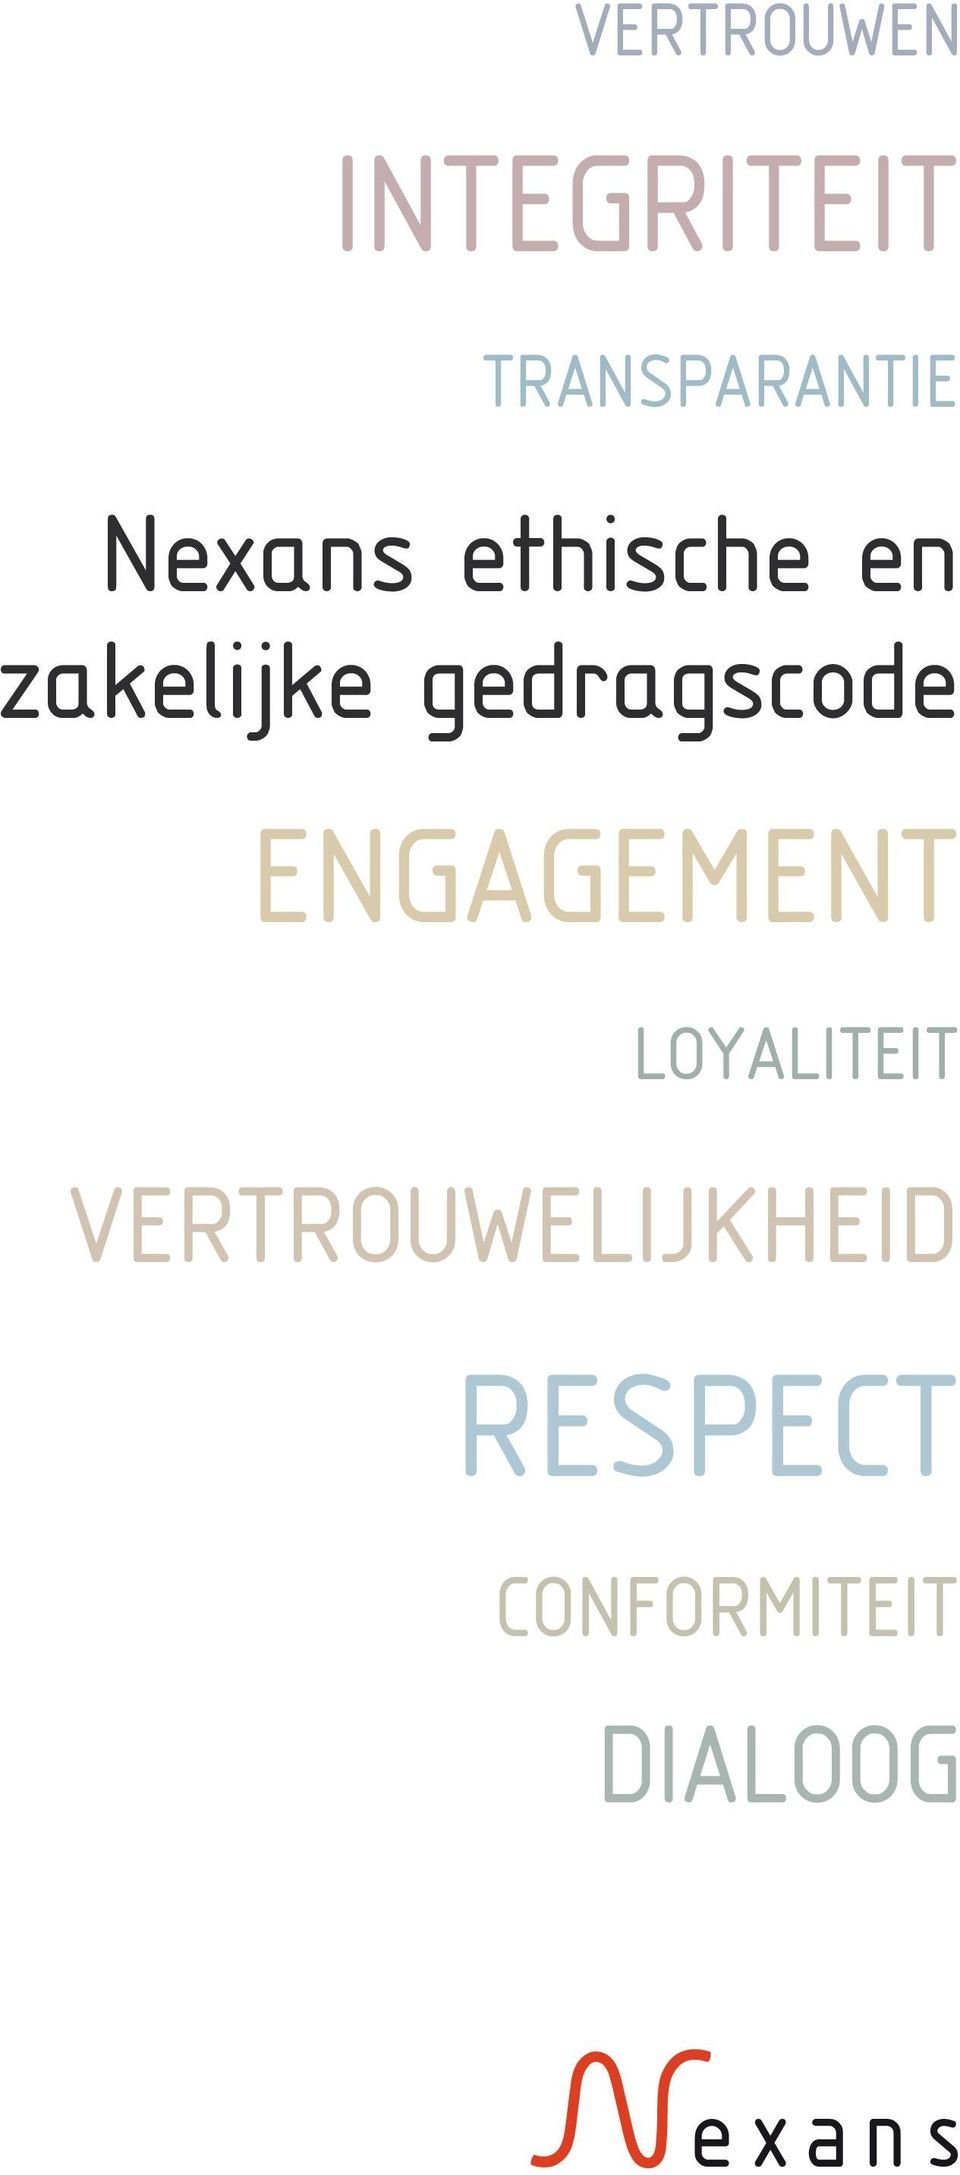 gedragscode ENGAGEMENT LOYALITEIT